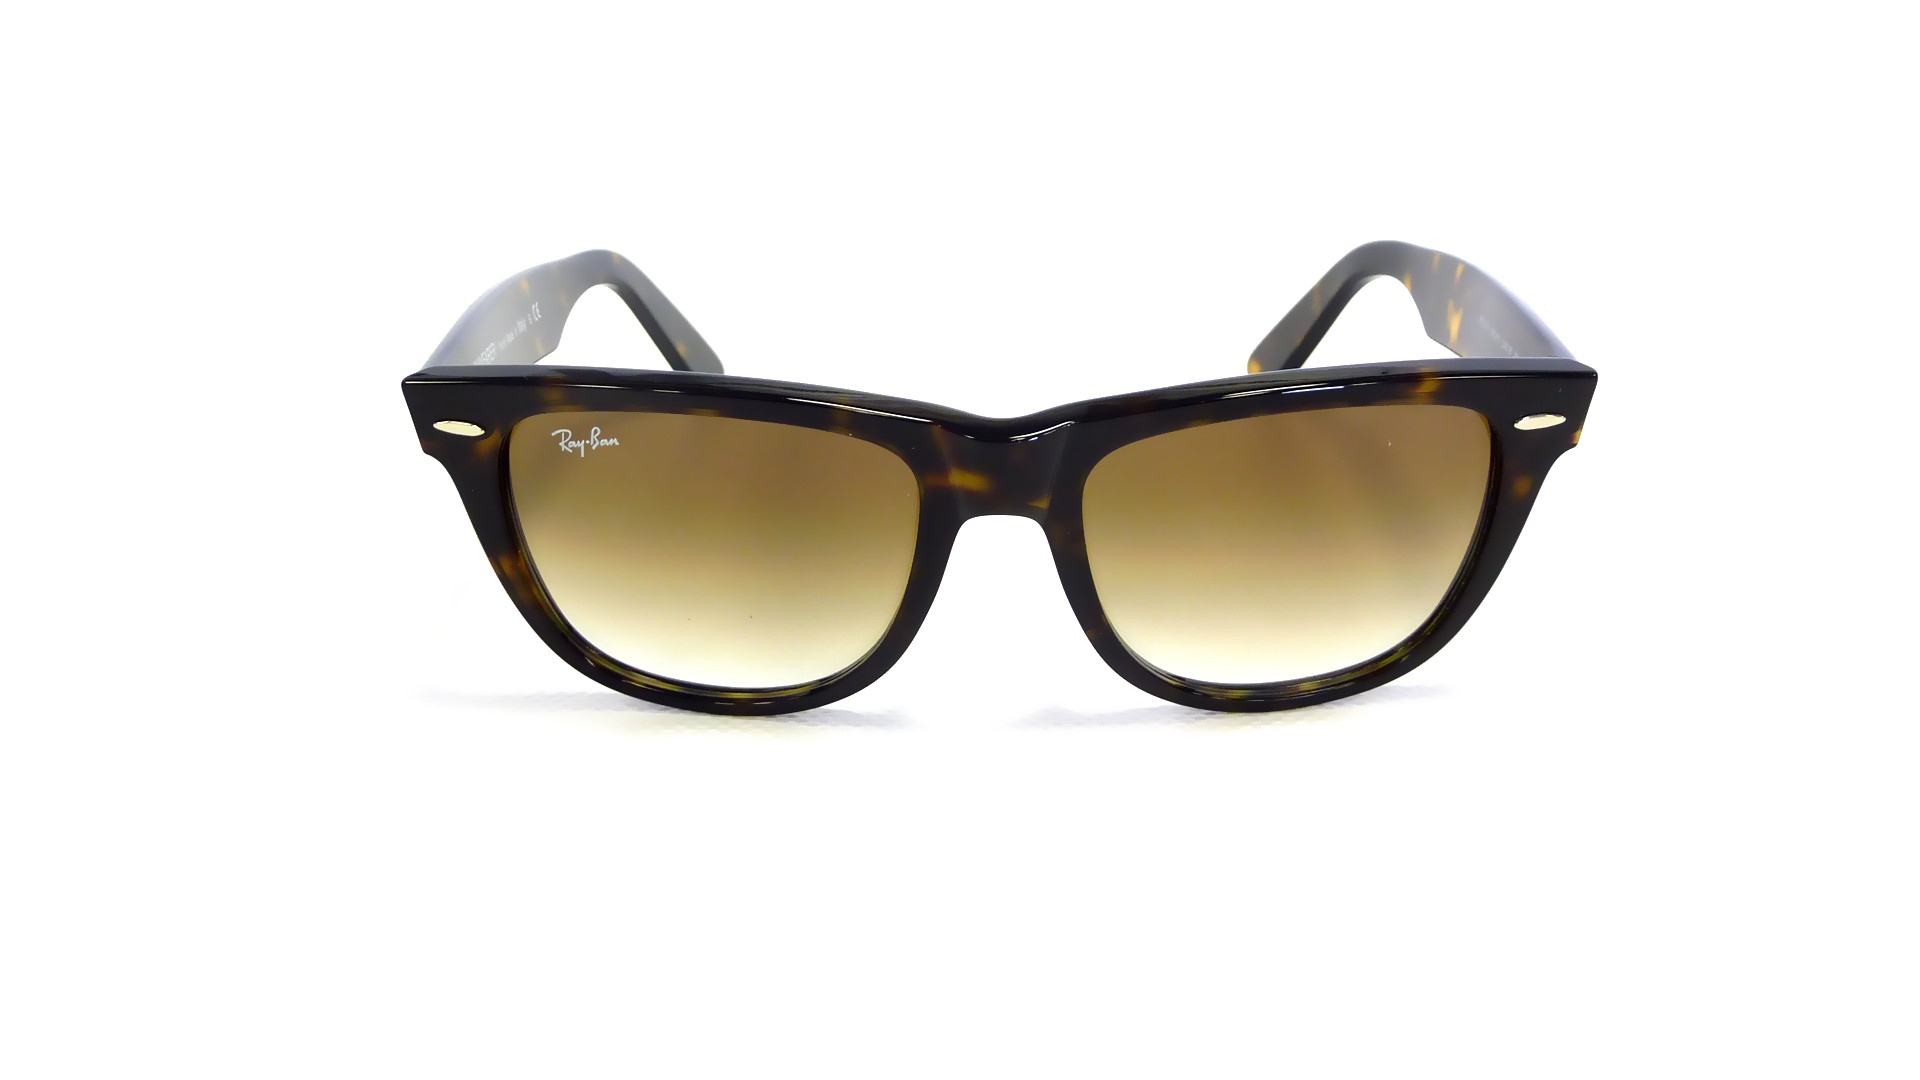 22bed532ea7 Sunglasses Ray-Ban Original Wayfarer Tortoise RB2140 902 51 50-22 Medium  Gradient